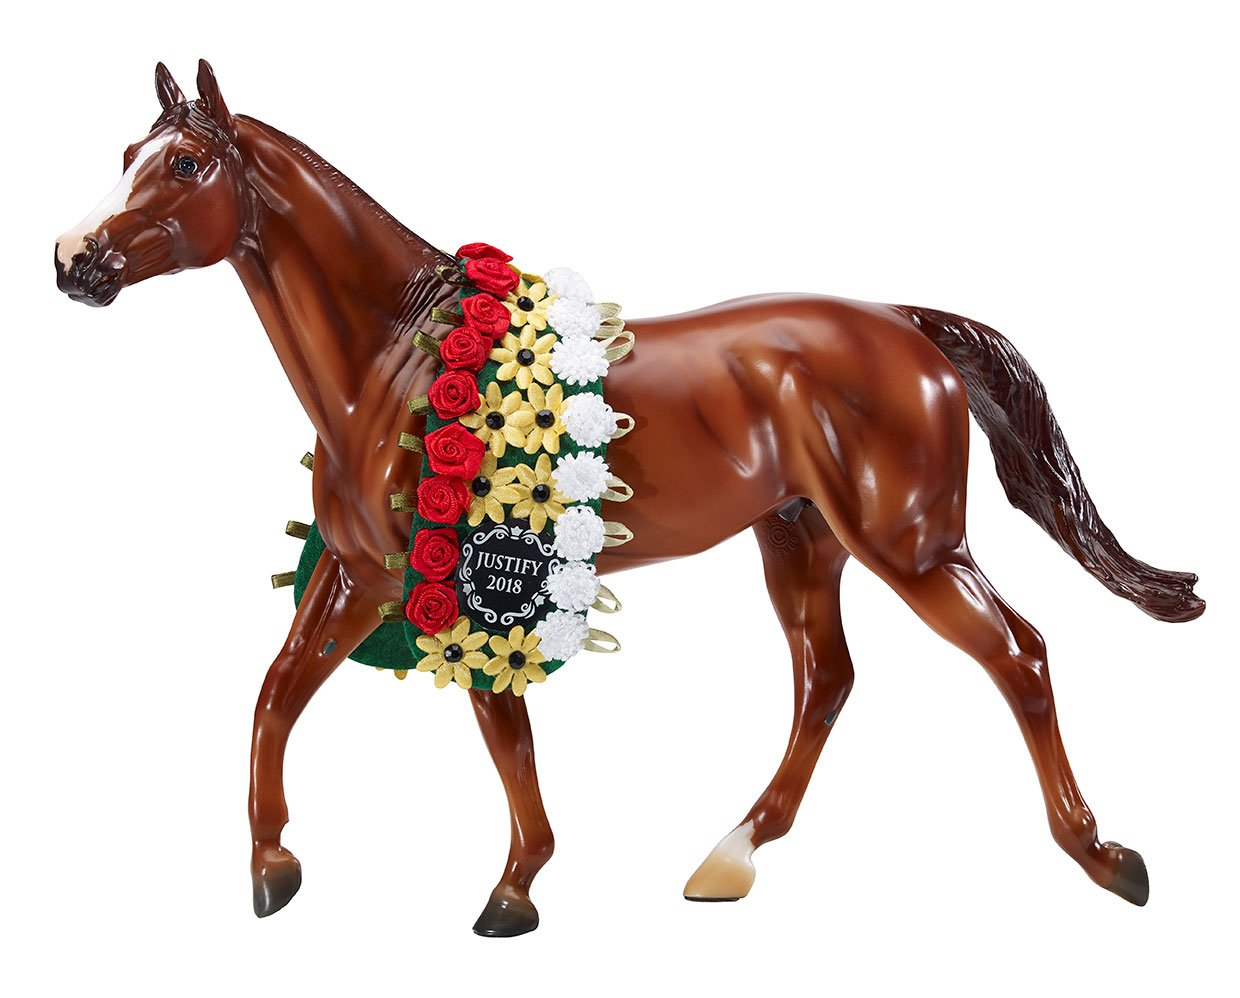 Breyer Justify 2018 Triple Crown Winner Traditional Model - North Shore Saddlery